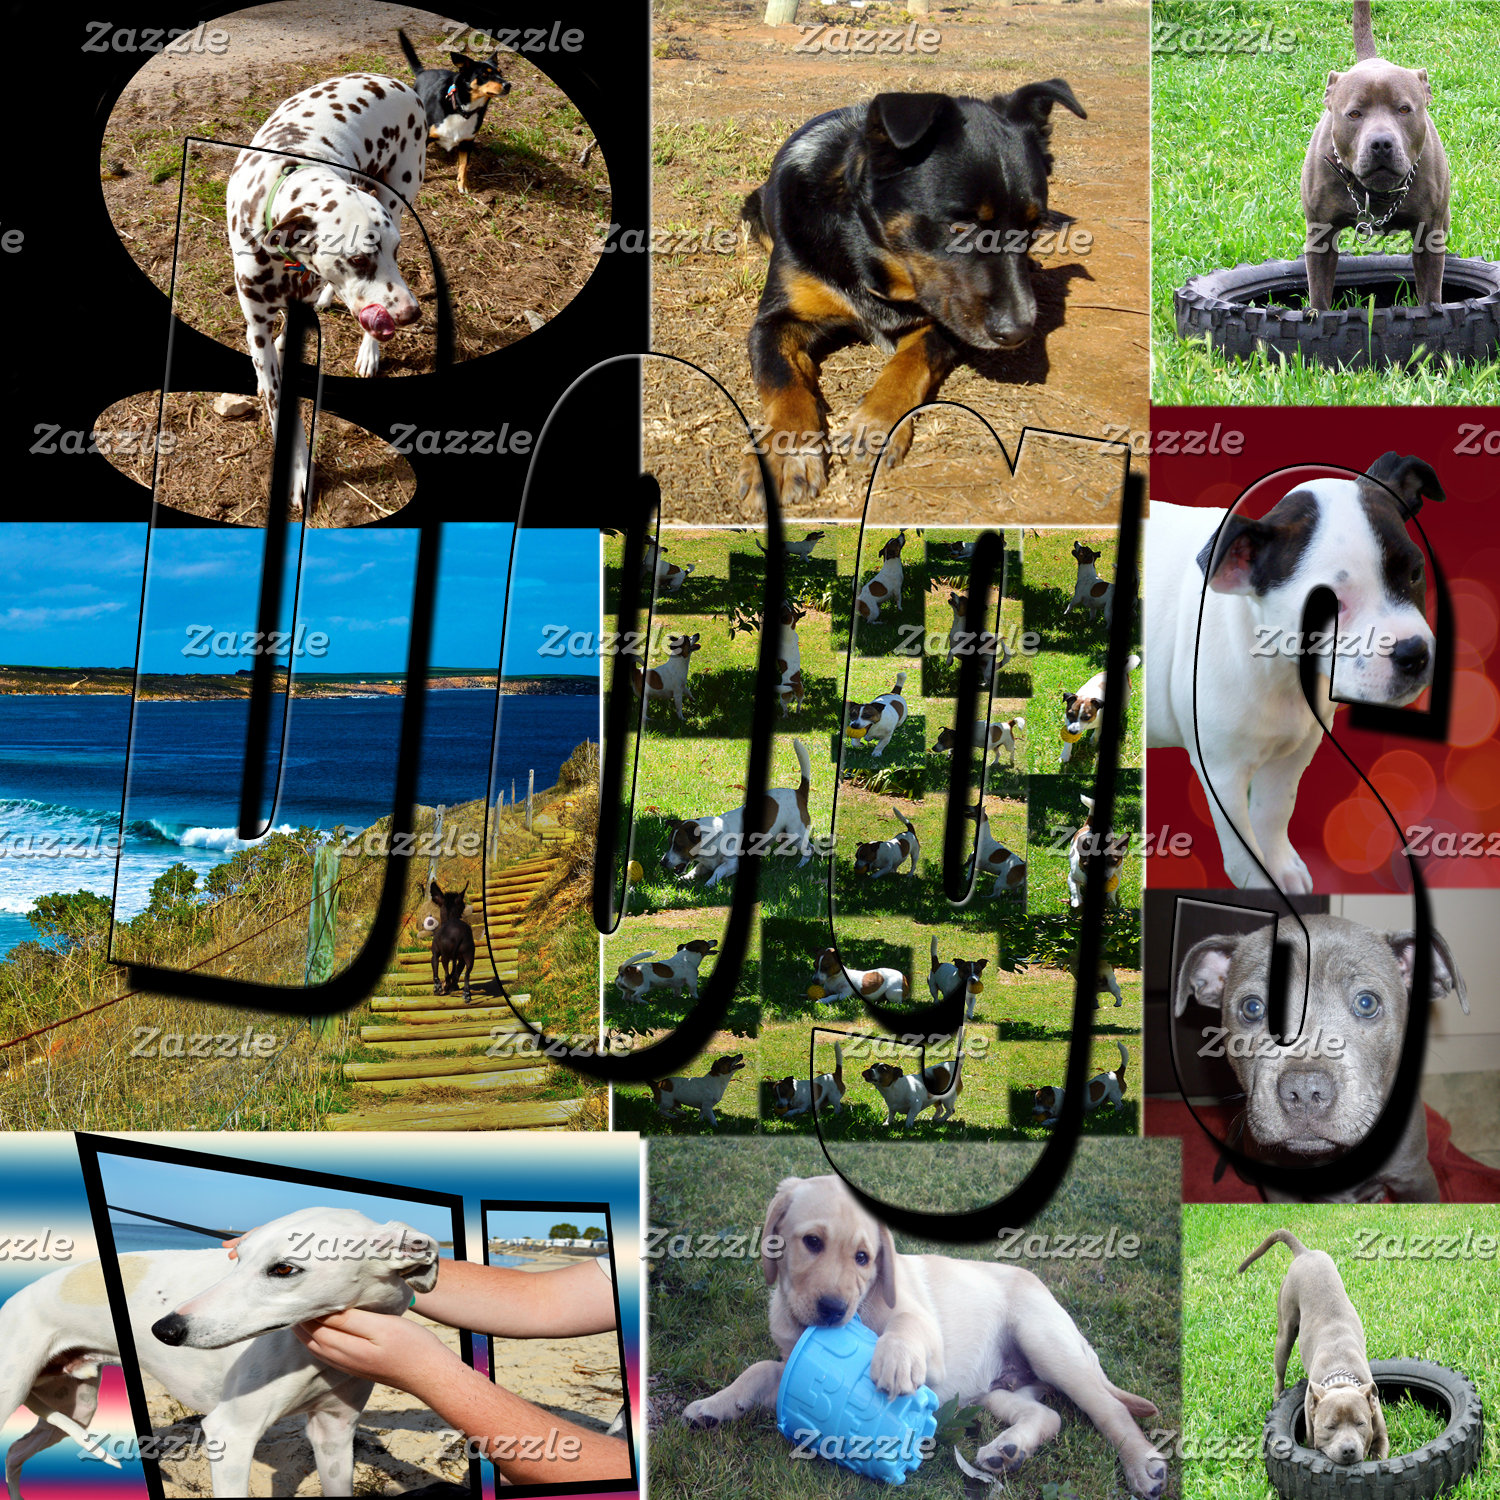 Dogs, Staffy, Fox Terrier, Dalmatian, Products.